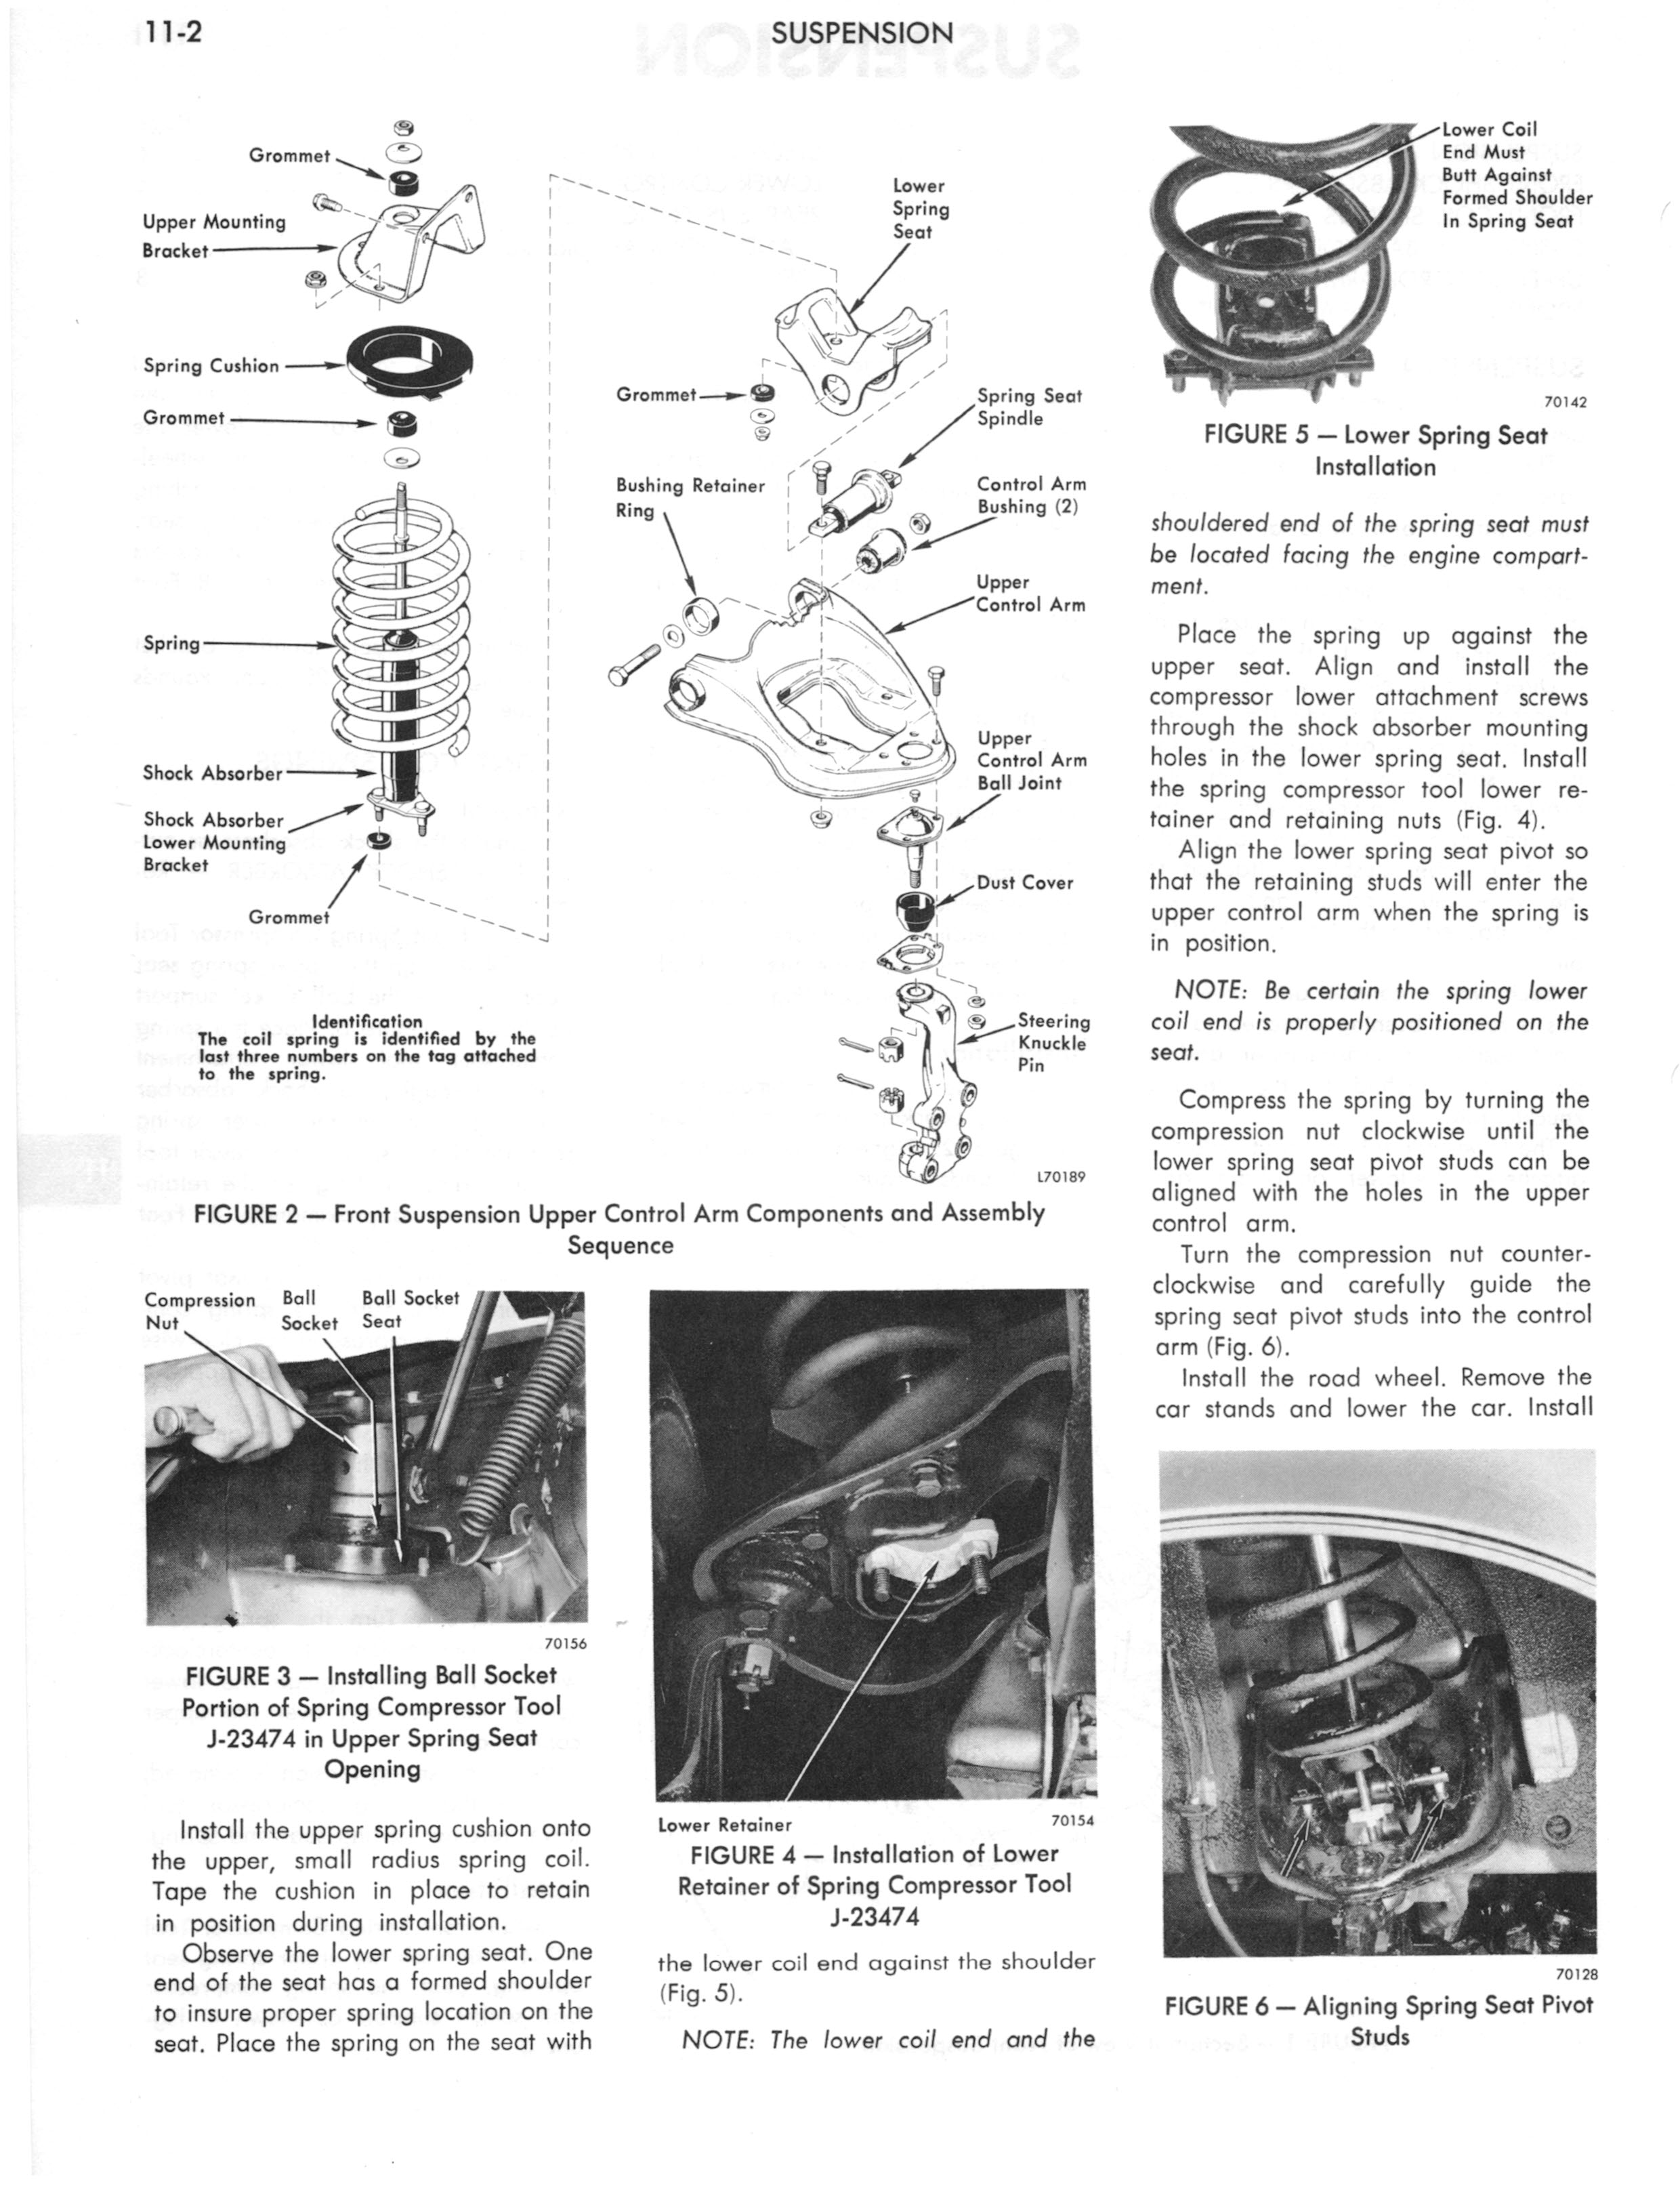 1973 AMC Technical Service Manual page 330 of 487